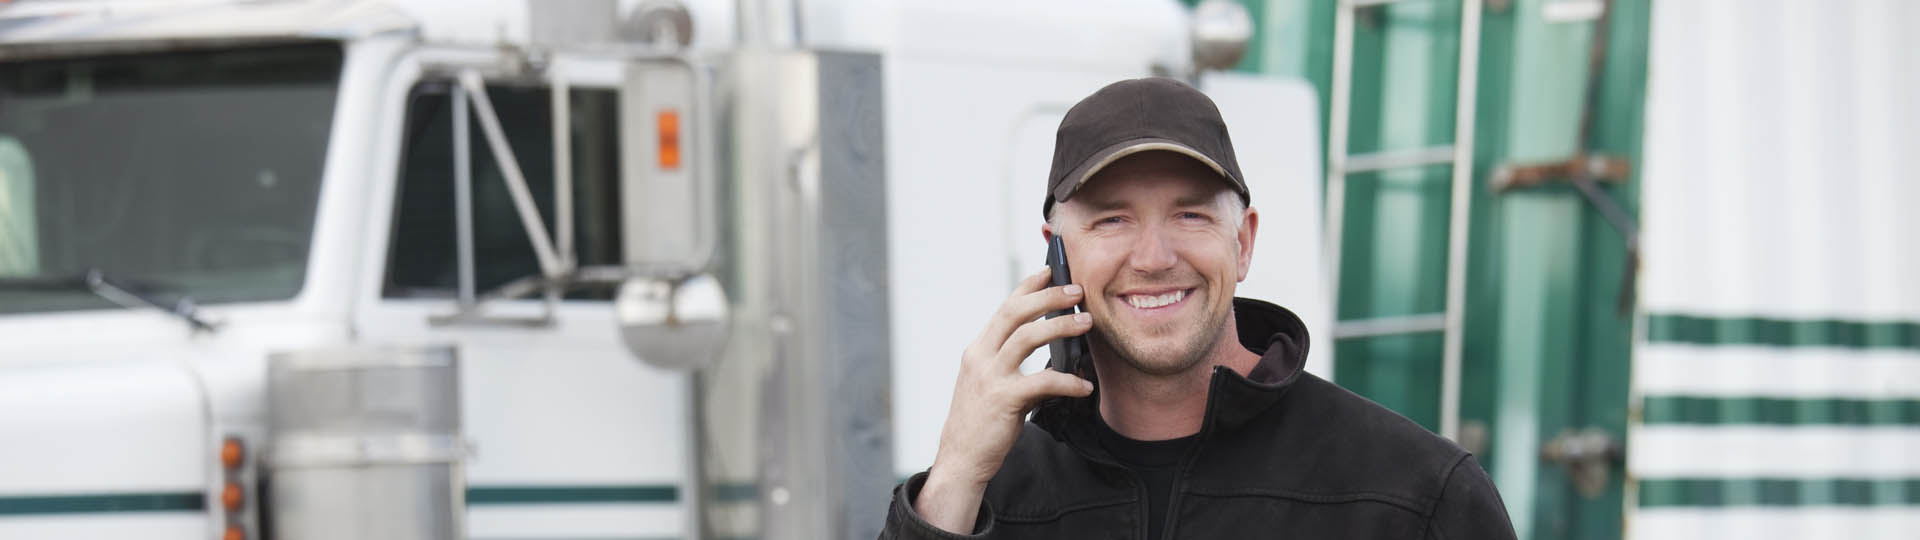 Man smiling while making a call in front of a truck